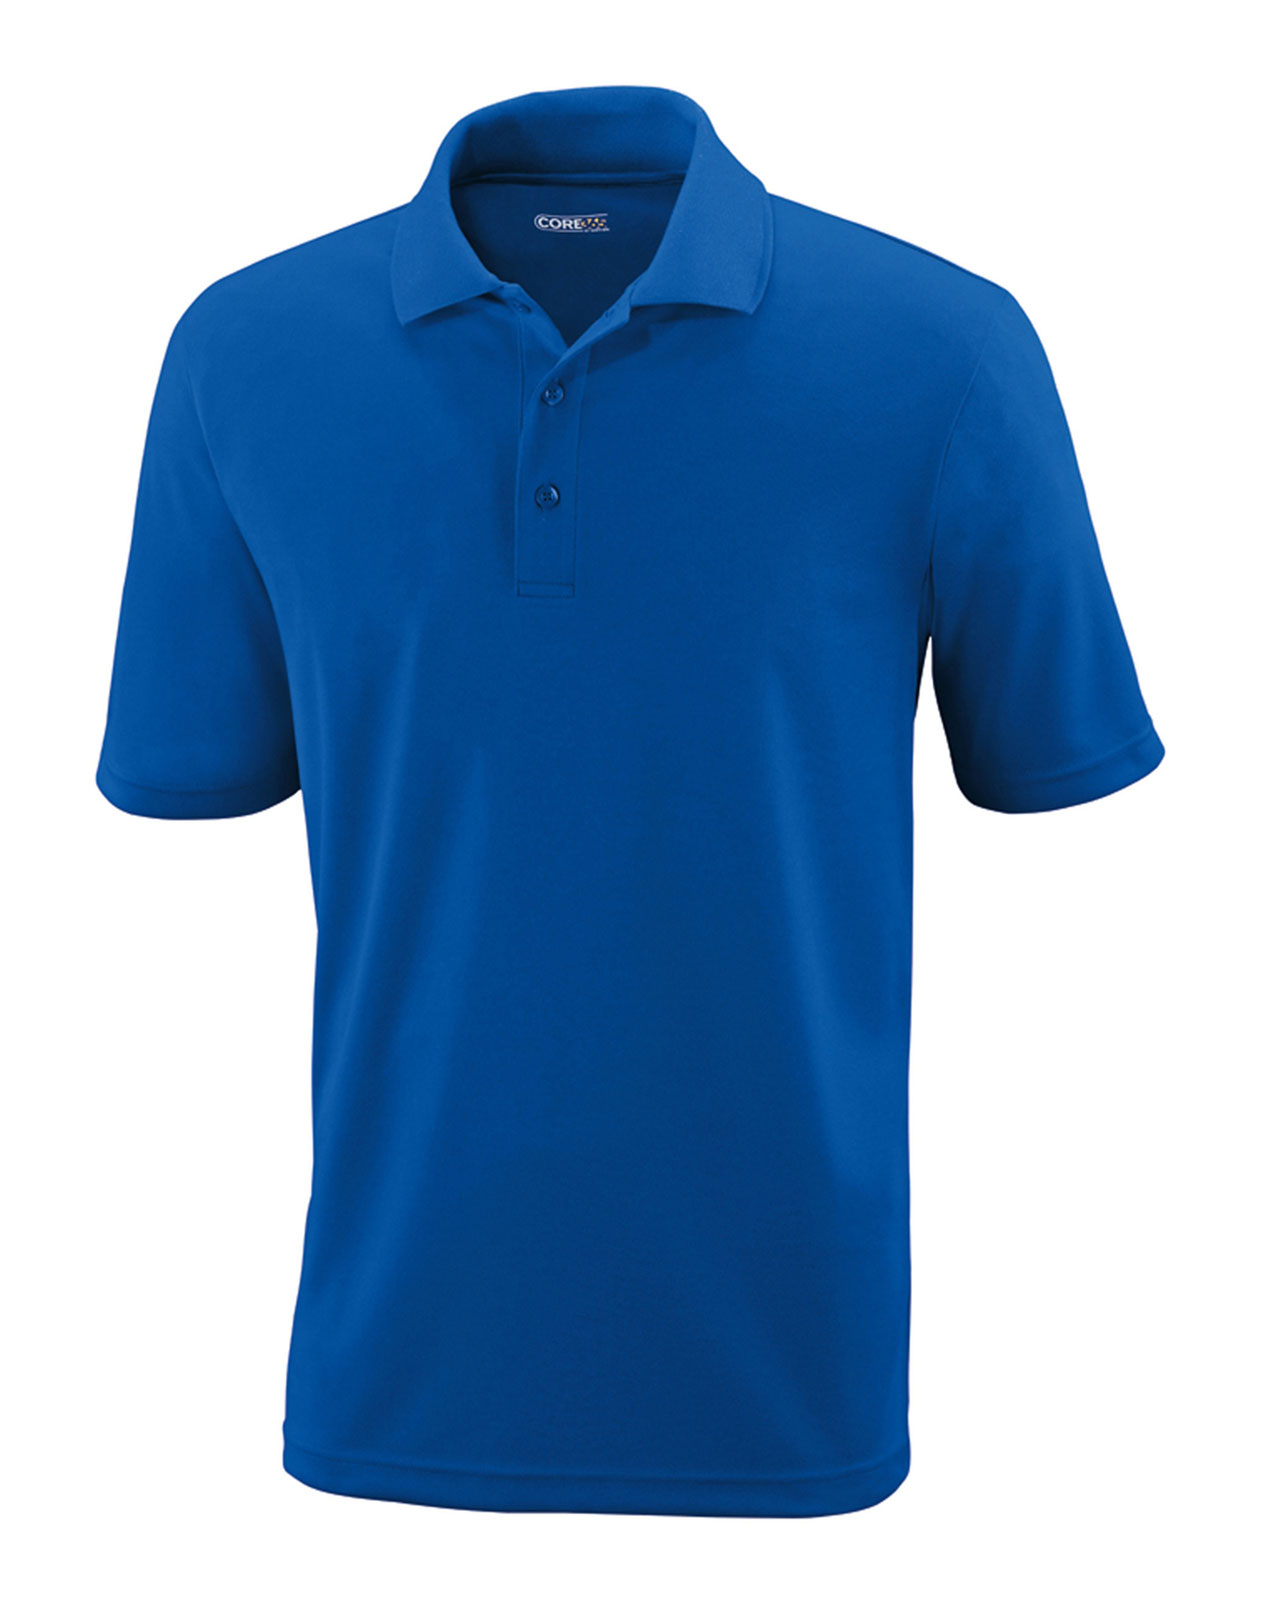 Mens Tall Performance Pique Polo